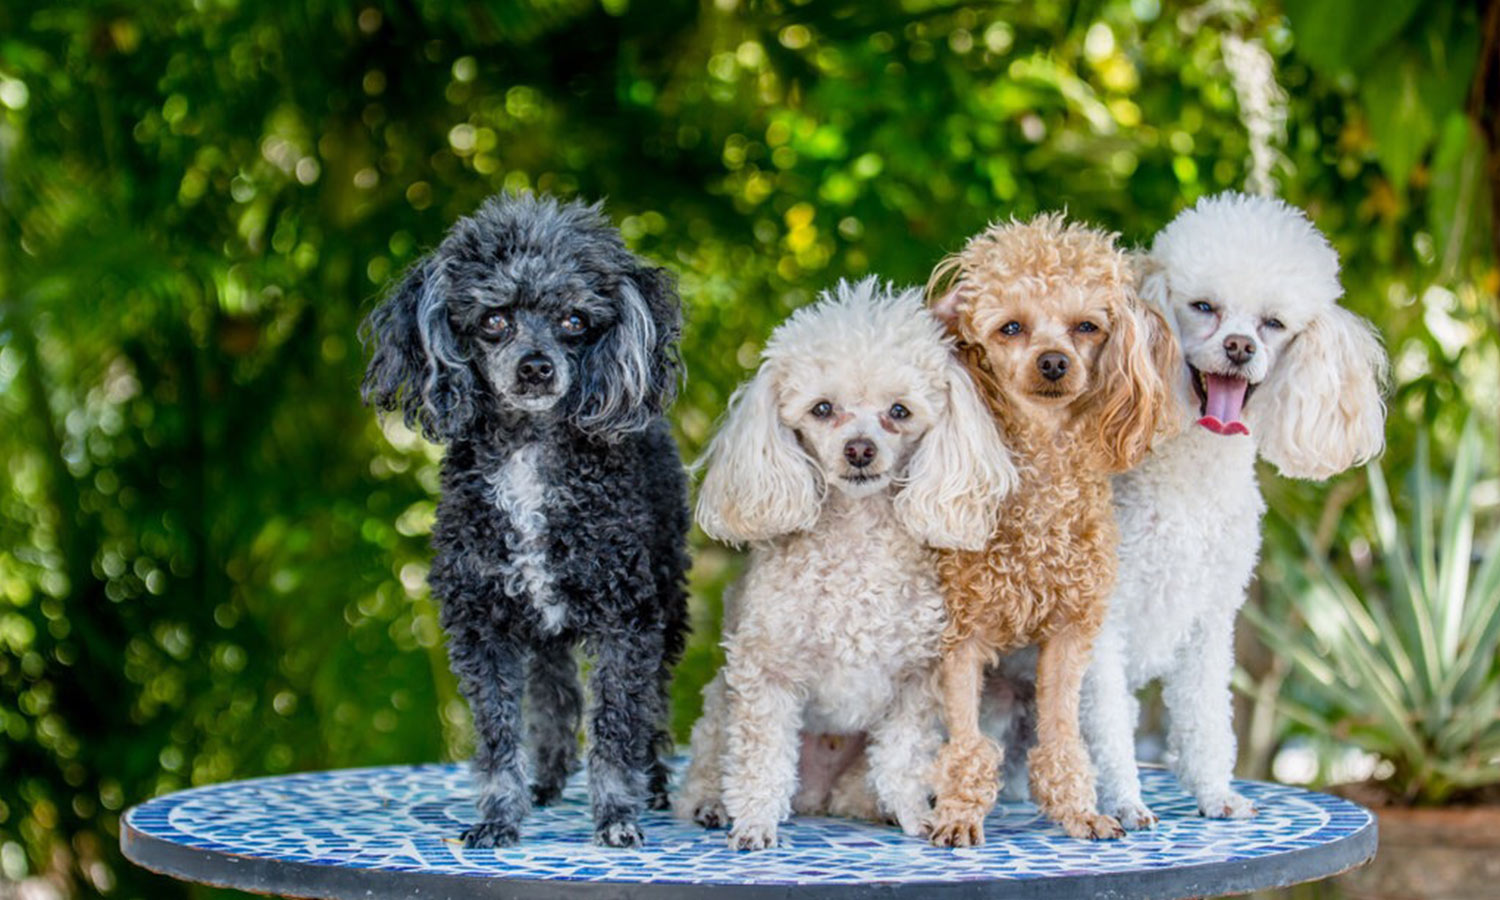 Sheila and Eric N. emailed a picture of their family of four teacup poodles, from left to right: Shaker, Martini, Margarita, and Salt! More than one is always fun! They live in Venice, FL.